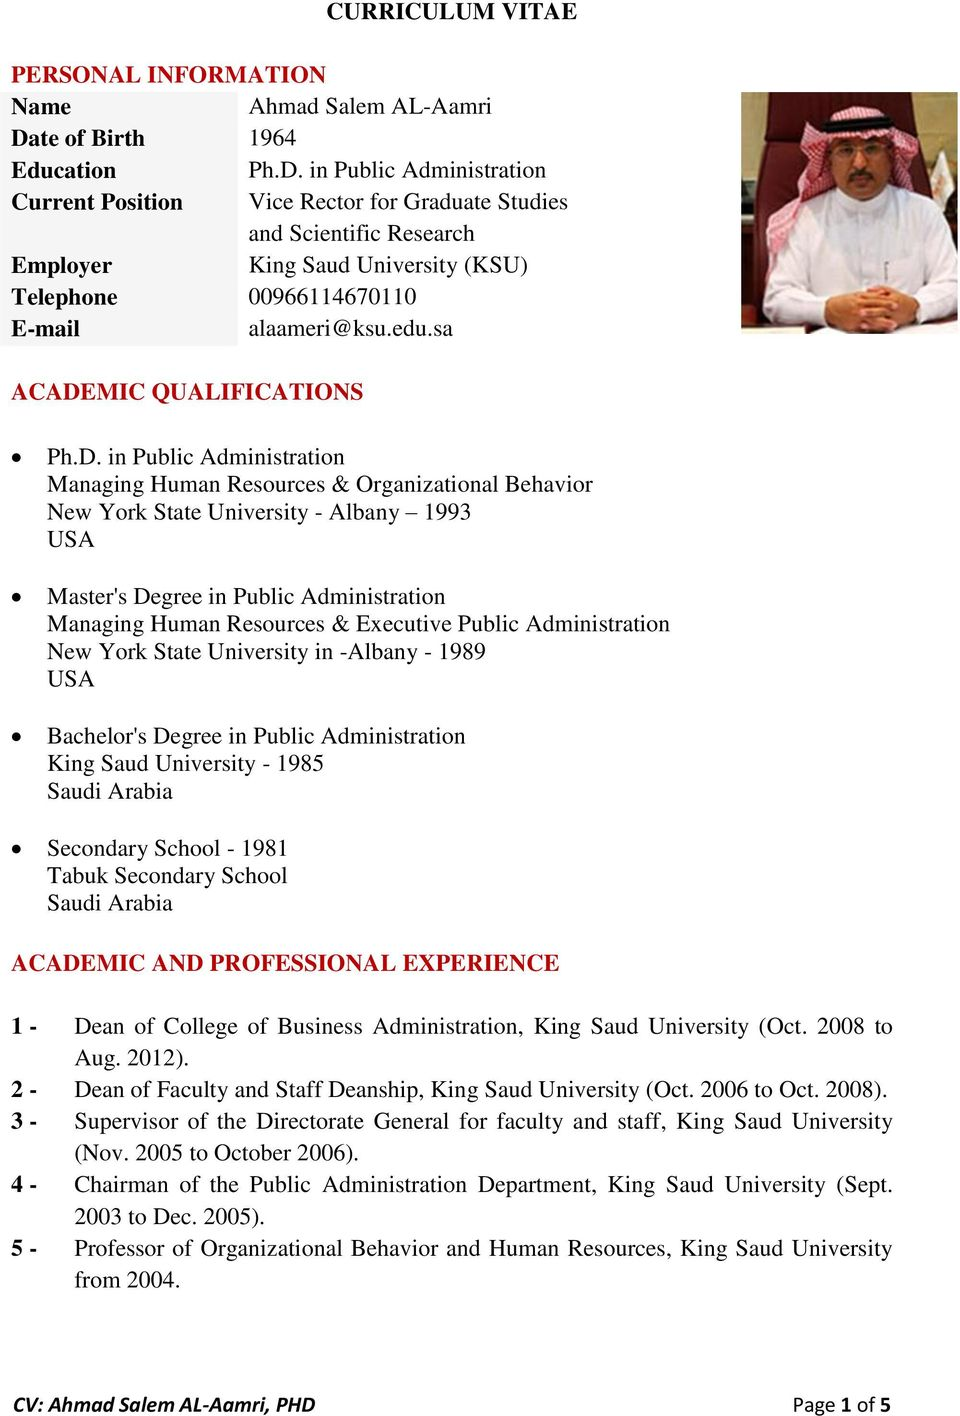 in Public Administration Current Position Vice Rector for Graduate Studies and Scientific Research Employer King Saud University (KSU) Telephone 00966114670110 E-mail alaameri@ksu.edu.